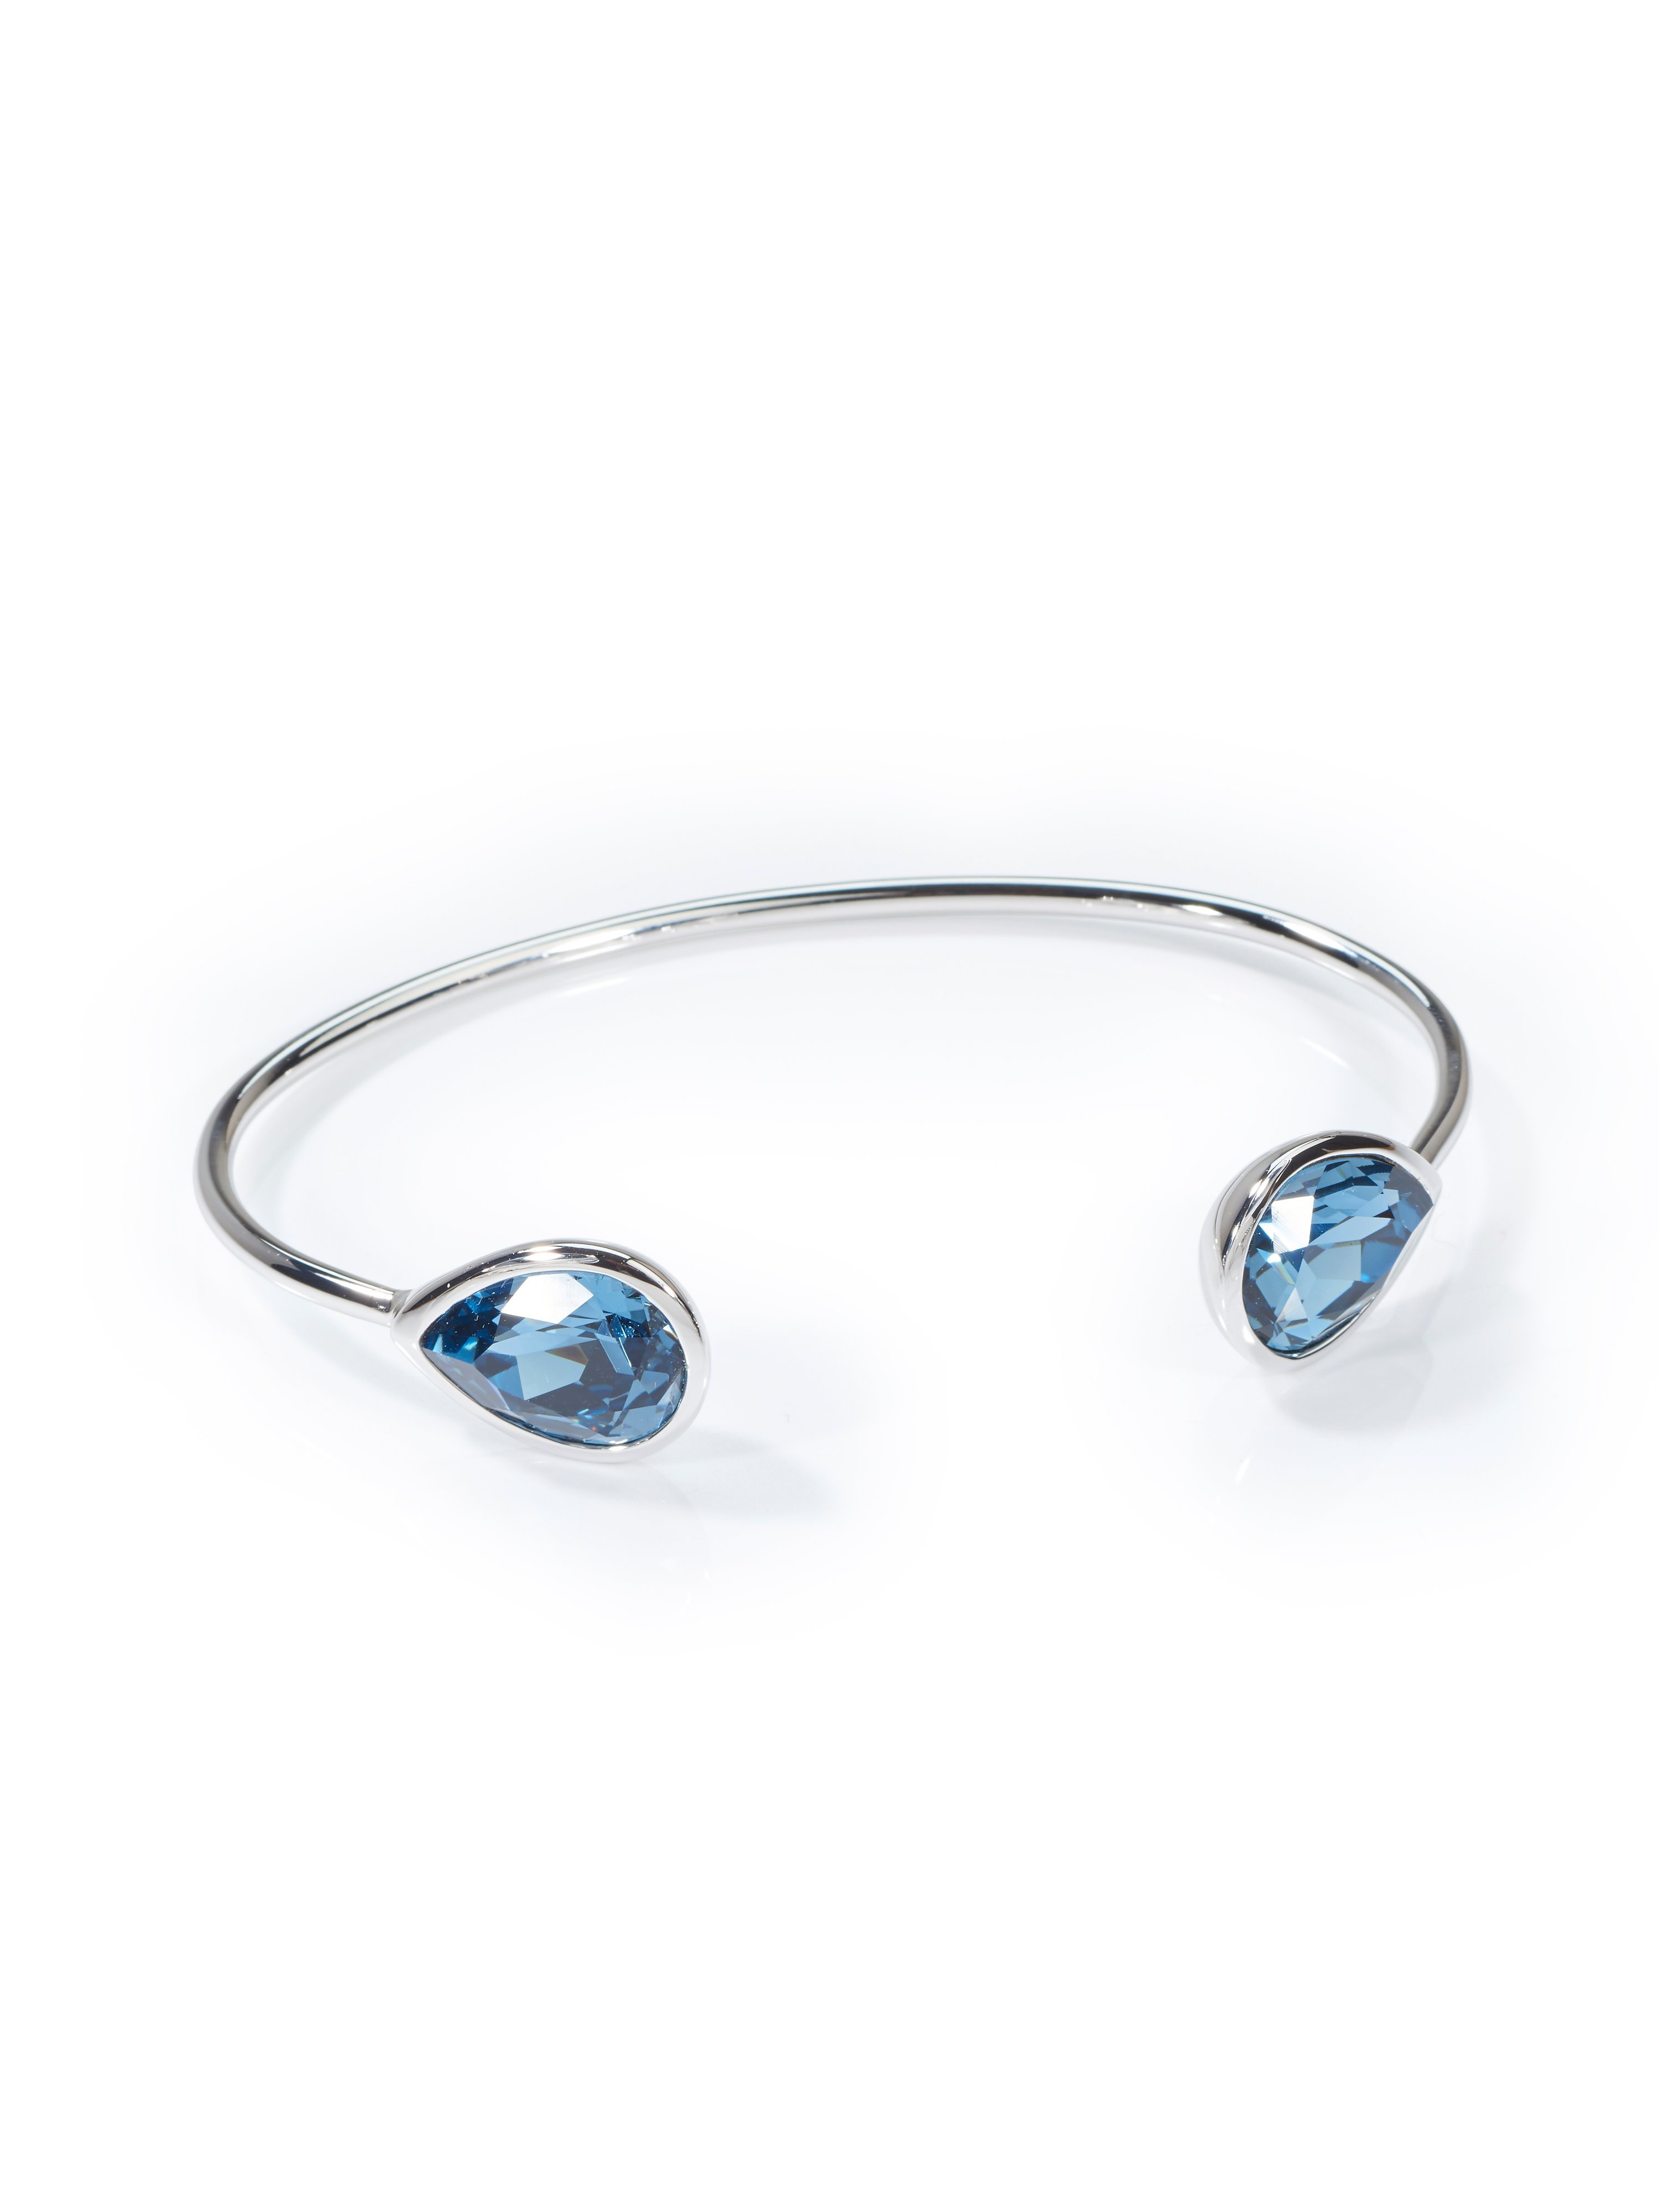 Bangle crystals mayfair by Peter Hahn silver